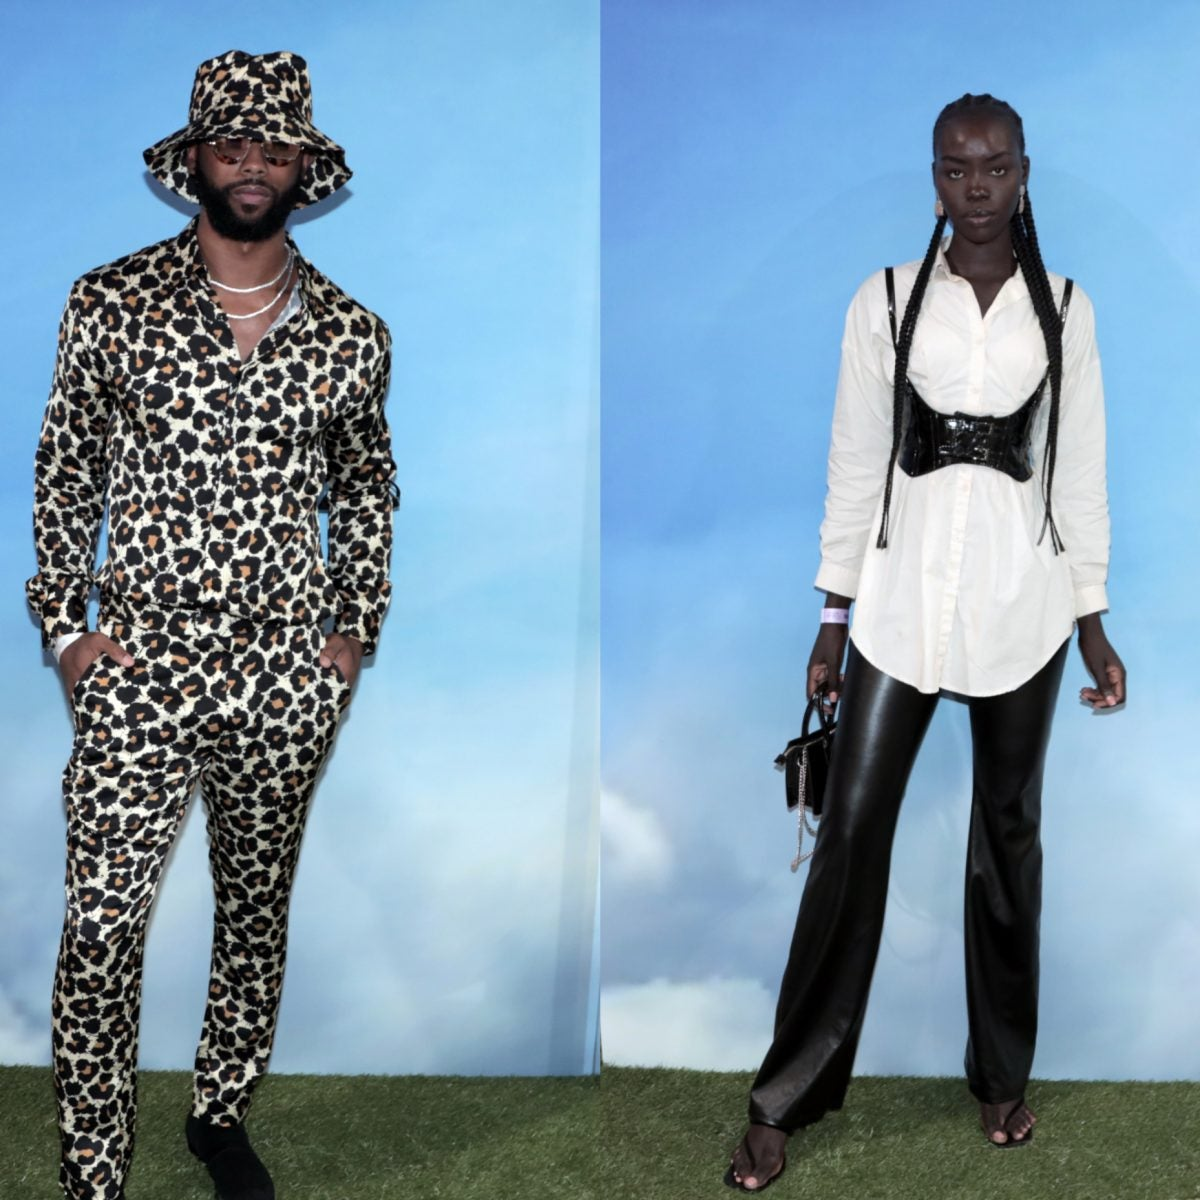 ICYMI: The Street Style At ESSENCE Fashion House Was Second To None